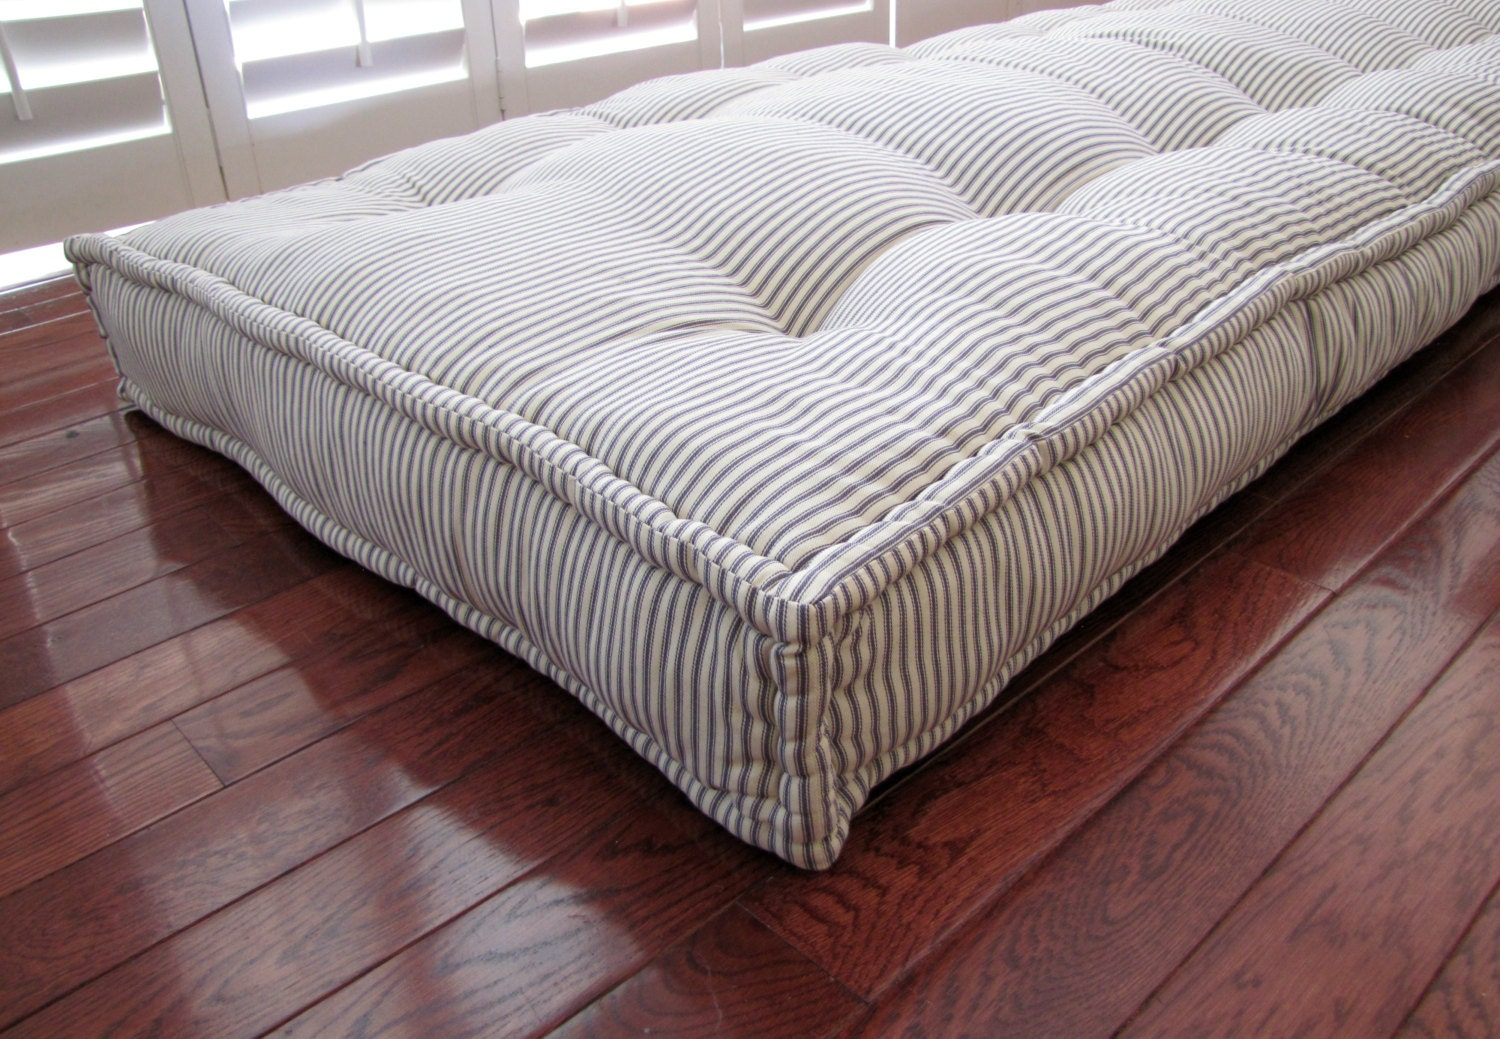 Diy Outdoor Floor Pillows : Custom Cushions Blue Ticking Stripe French Mattress